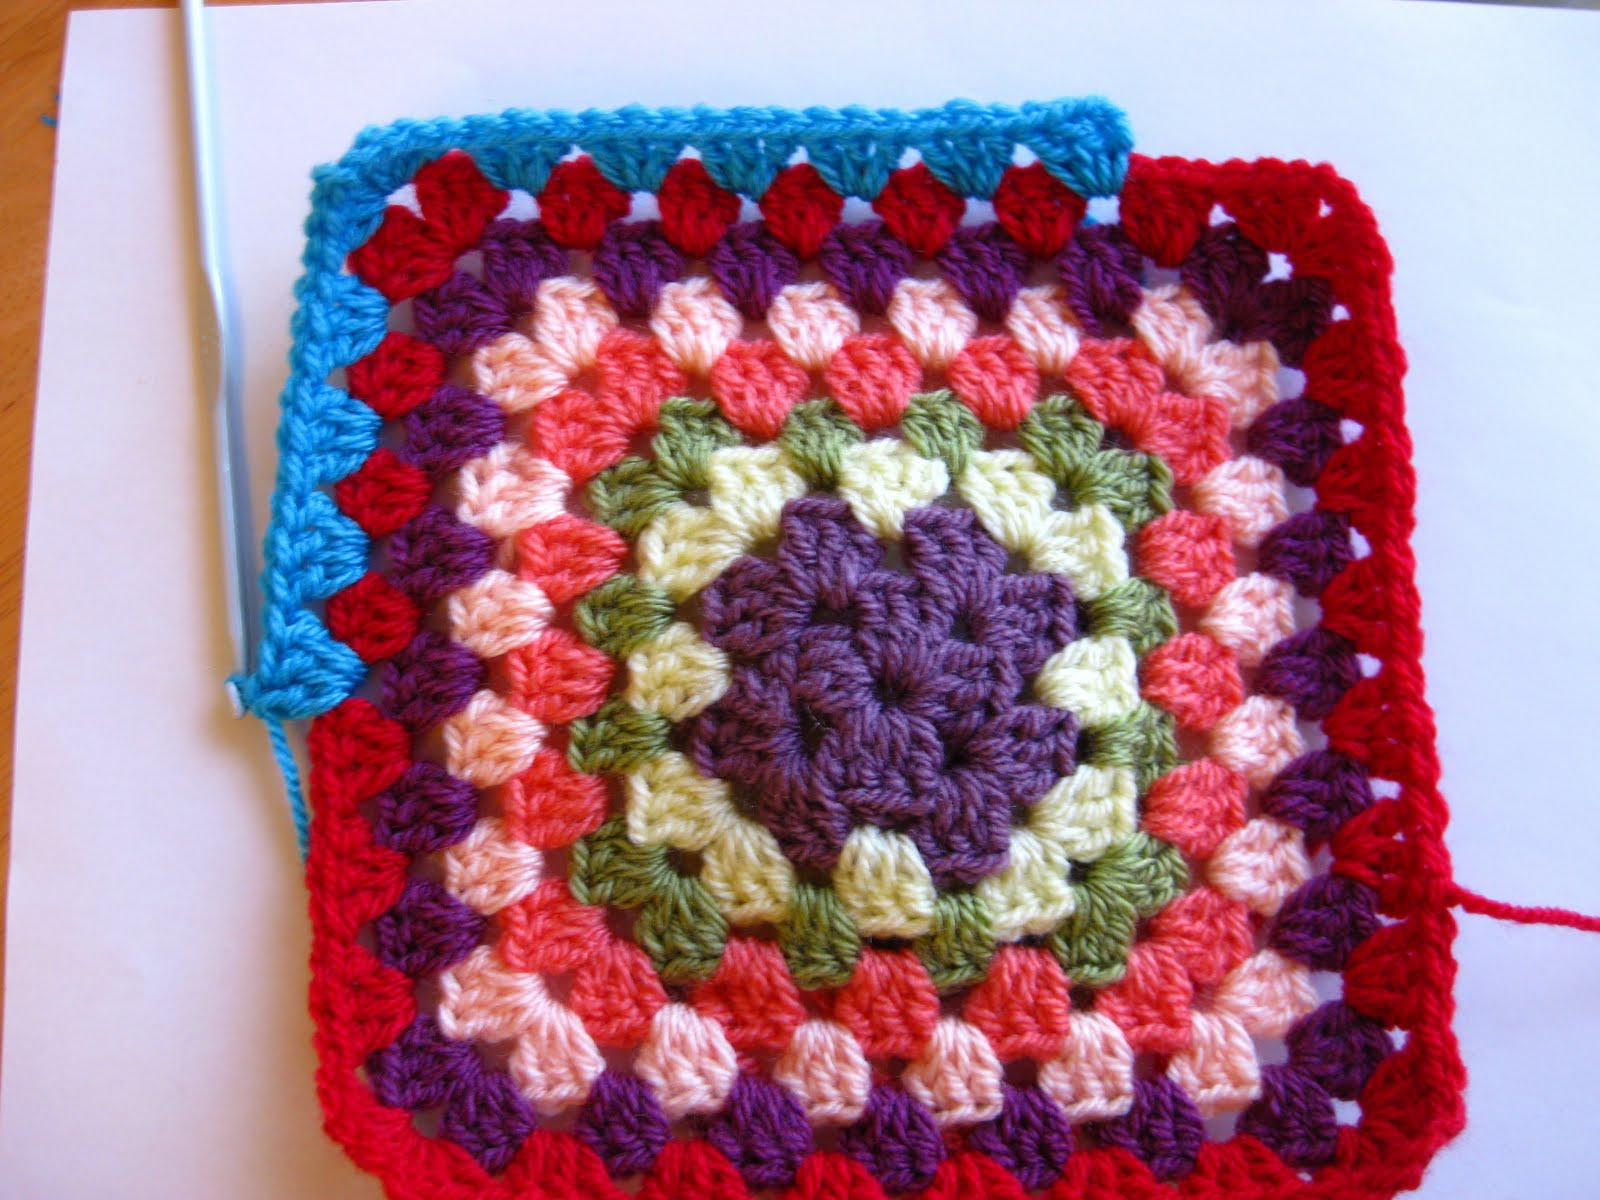 Crochet Easy Granny Square Patterns : Bunny Mummy: How to crochet a Granny Square